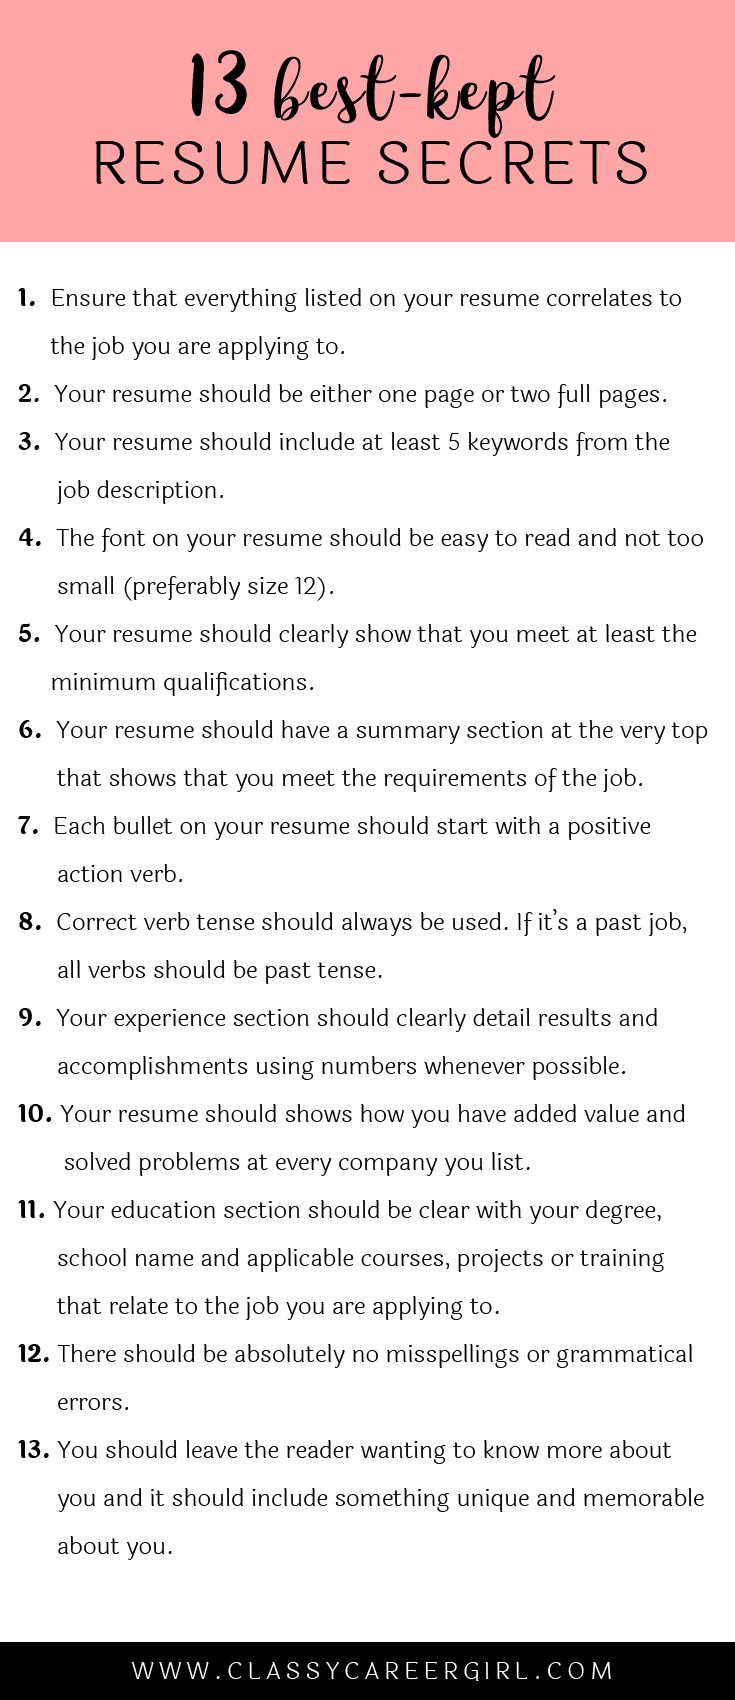 Opposenewapstandardsus  Pretty  Ideas About Resume On Pinterest  Cv Format Resume Cv And  With Magnificent Some Hiring Managers Will Toss Your Resume Out If You Dont Know These  With Cute Ccna Resume Also Fashion Resumes In Addition A Resume Format And Front Desk Resume Sample As Well As Resume Search For Employers Additionally Resume Help Nyc From Pinterestcom With Opposenewapstandardsus  Magnificent  Ideas About Resume On Pinterest  Cv Format Resume Cv And  With Cute Some Hiring Managers Will Toss Your Resume Out If You Dont Know These  And Pretty Ccna Resume Also Fashion Resumes In Addition A Resume Format From Pinterestcom